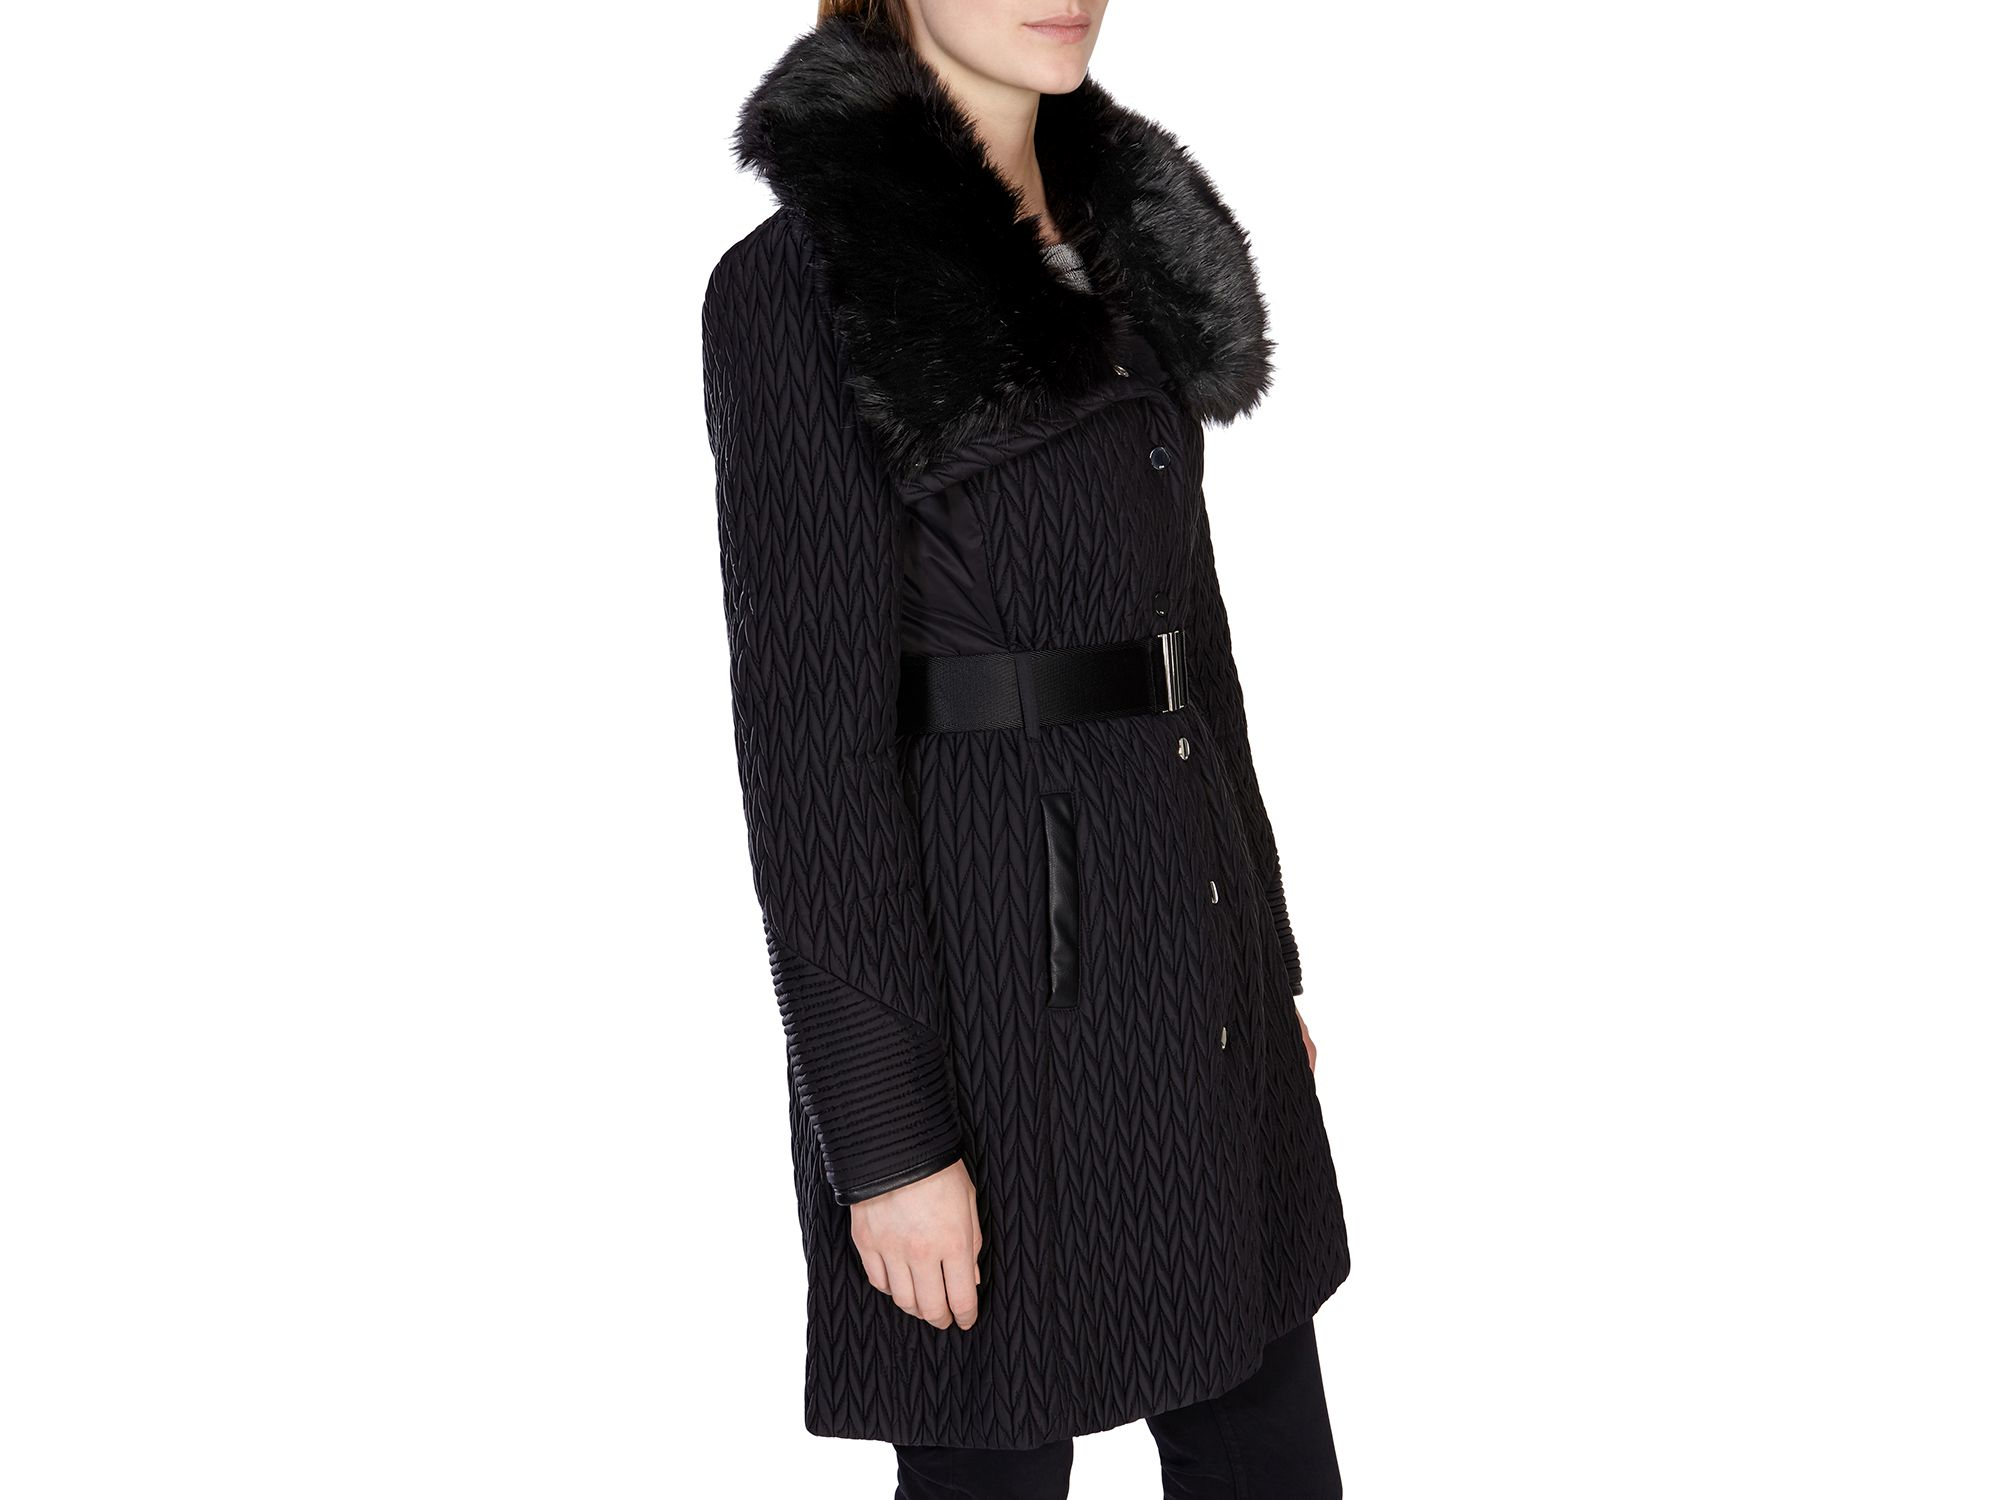 a806a08905e8 Gallery. Previously sold at: Bloomingdale's · Women's Quilted Coats